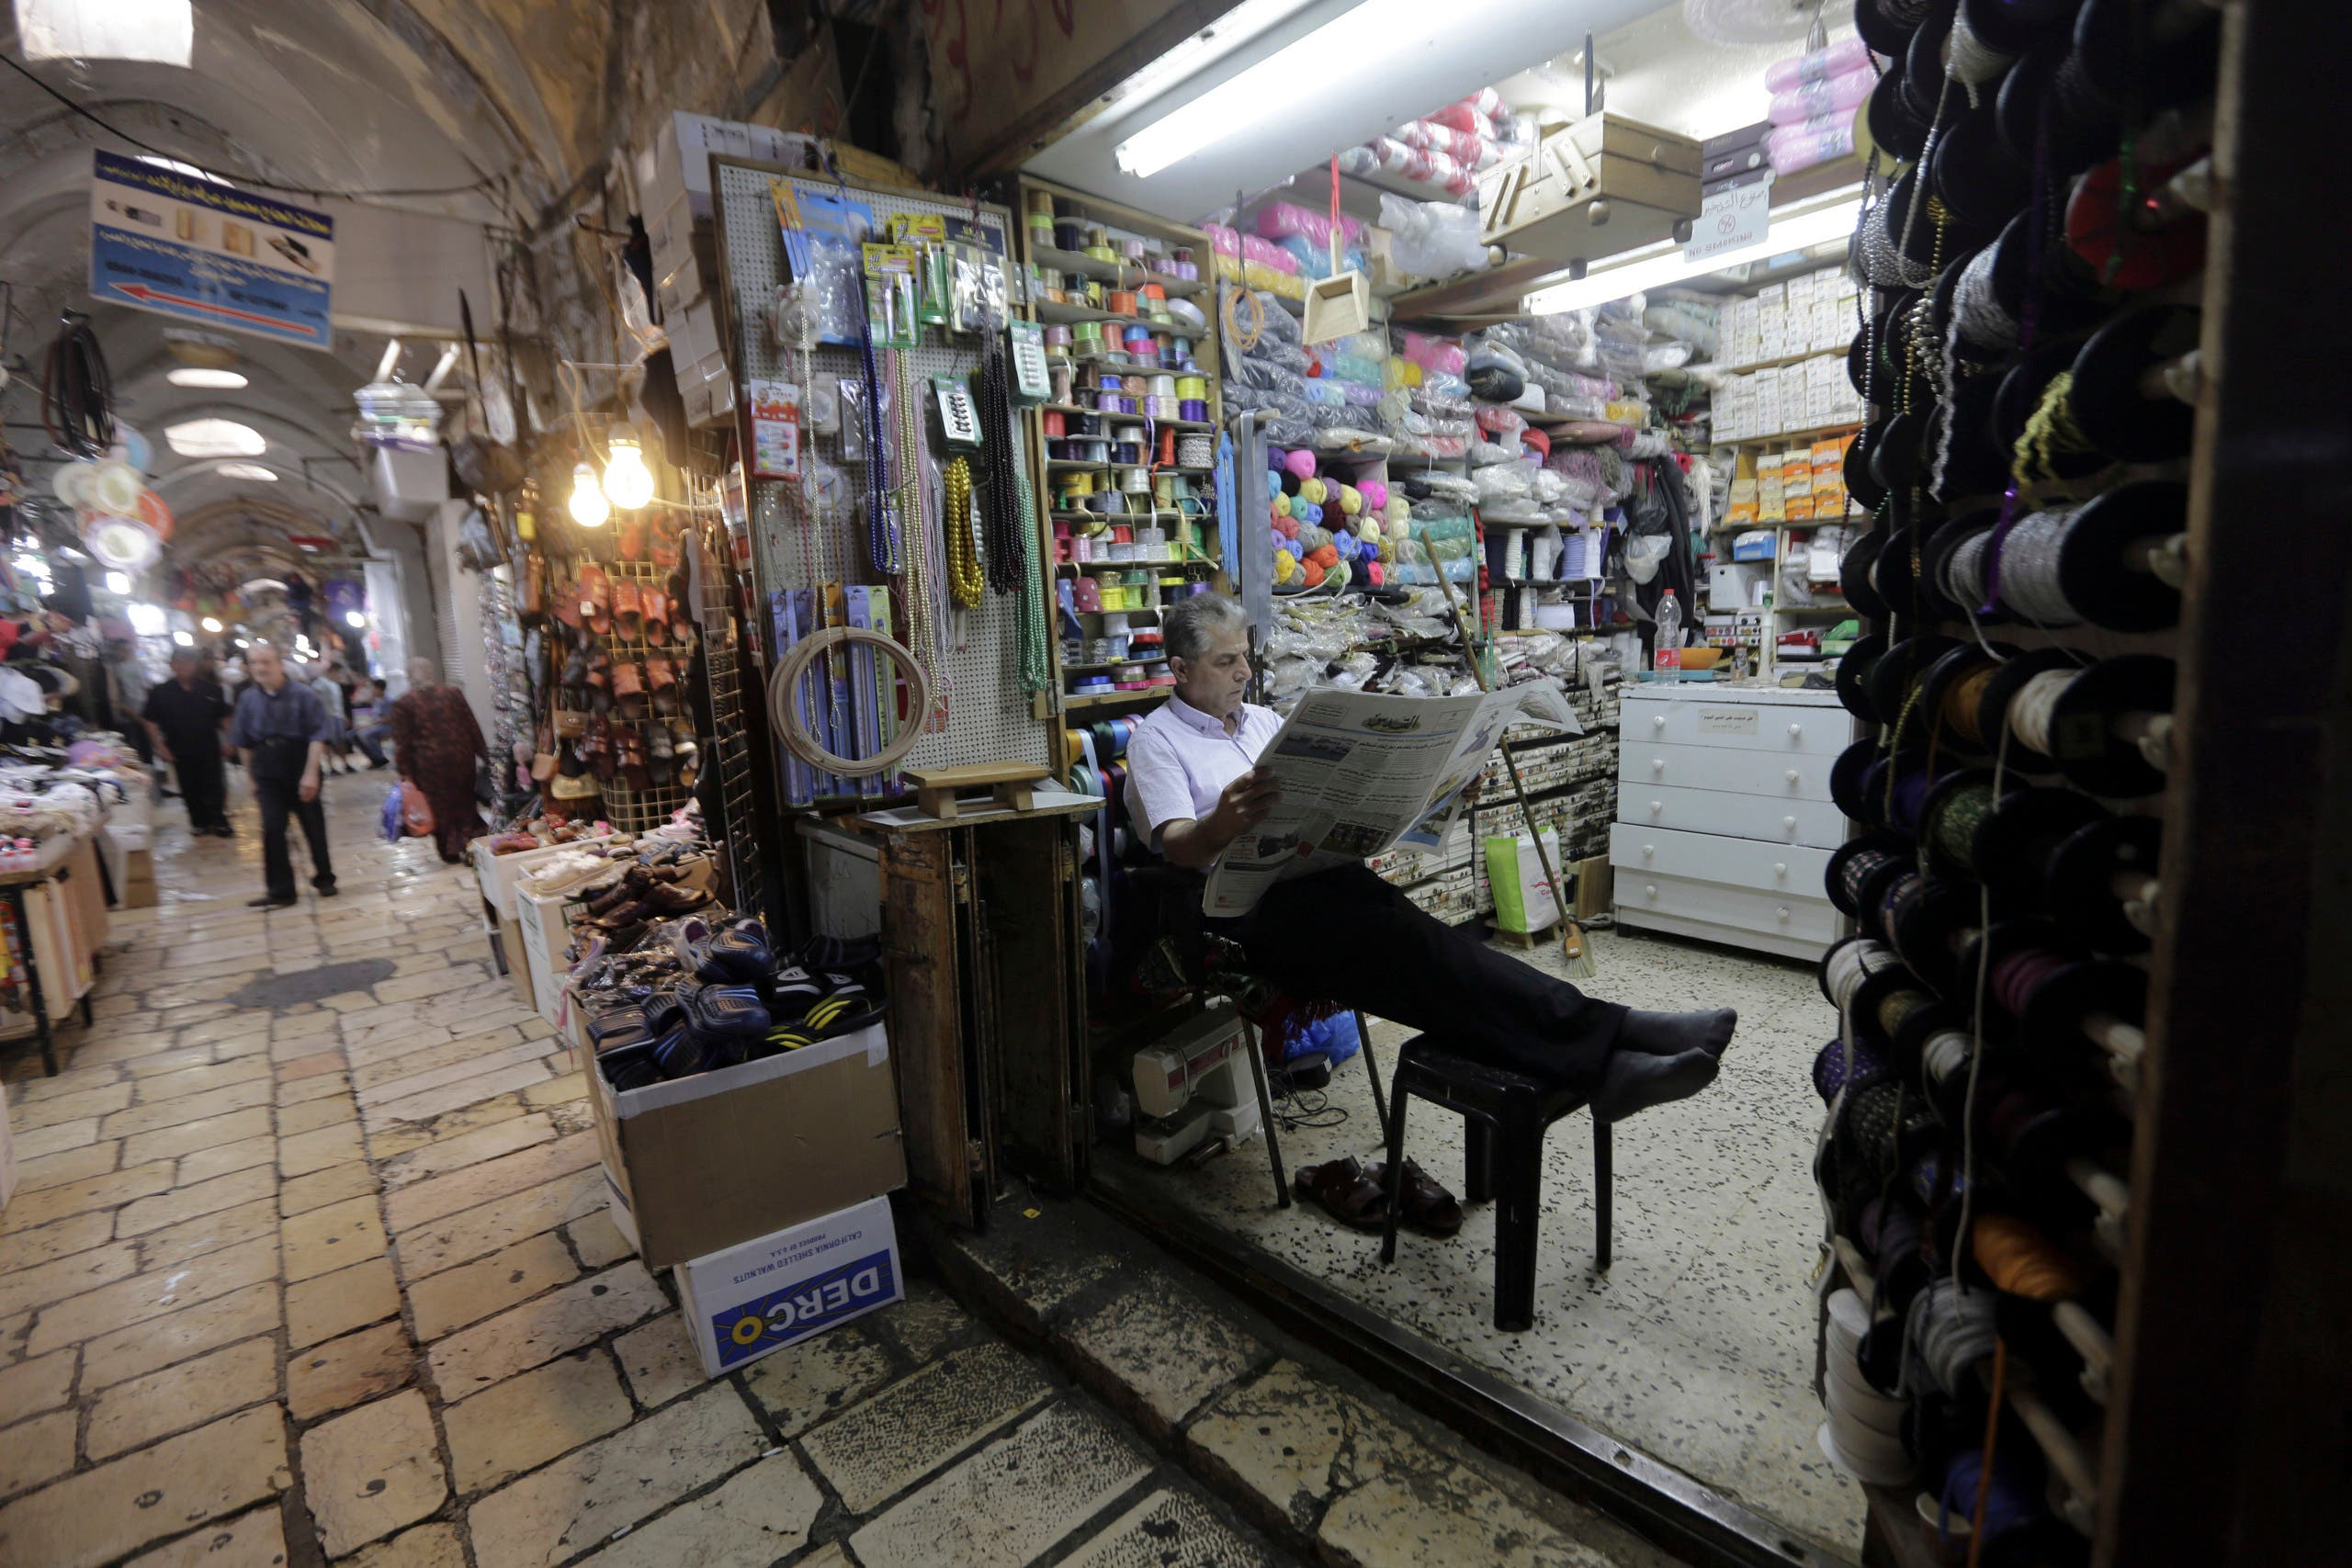 A shopkeeper waits for customers in the Muslim Quarter of the Old City in East Jerusalem on July 11, 2018. (AP)